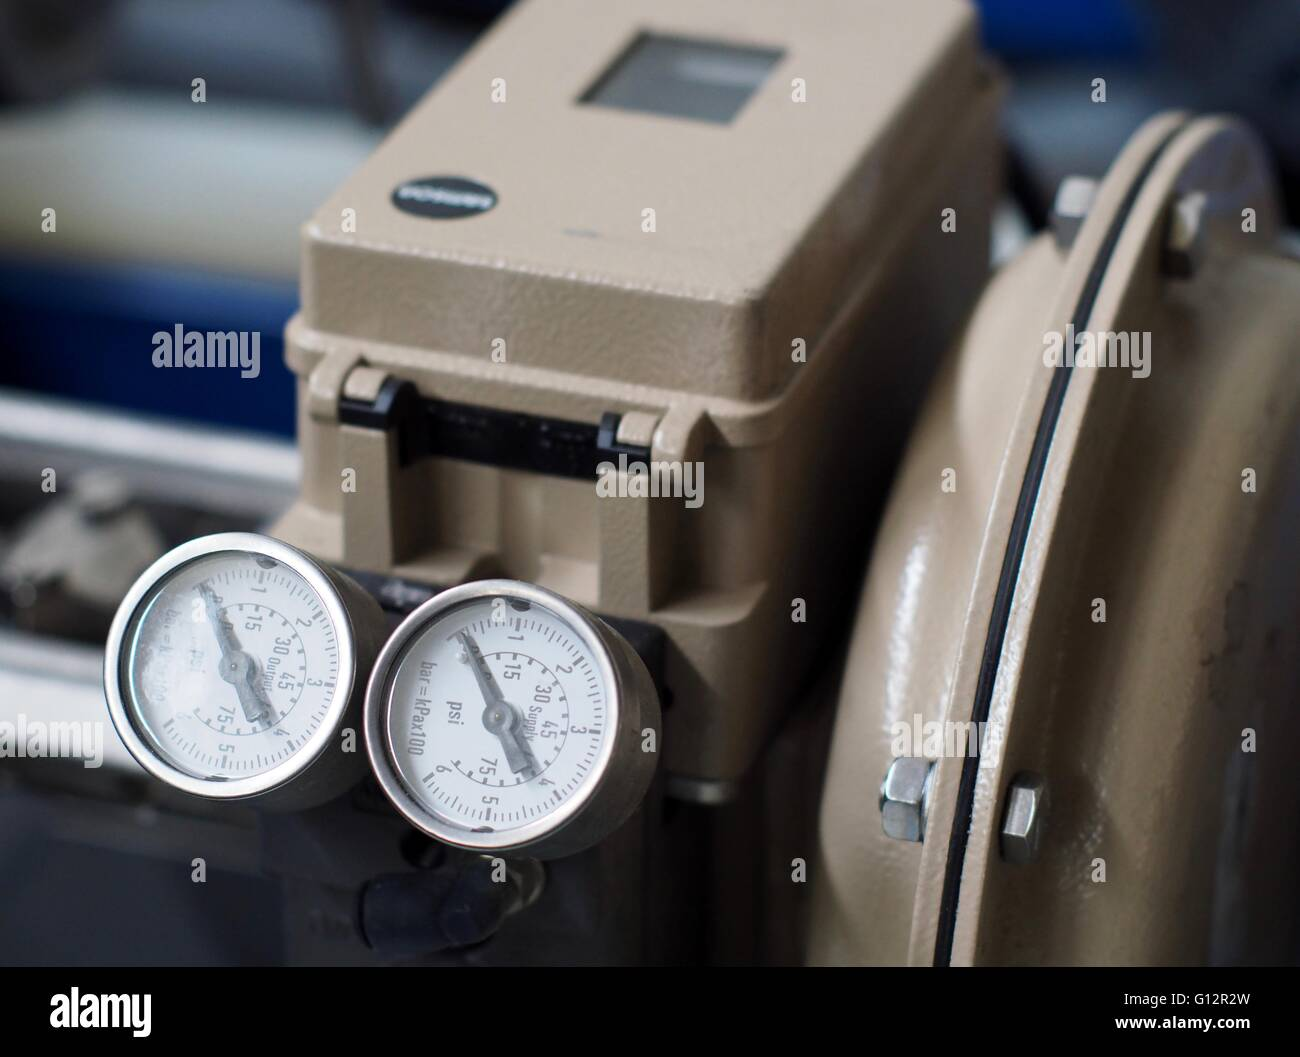 PSI dial gauges on industrial machinery Stock Photo